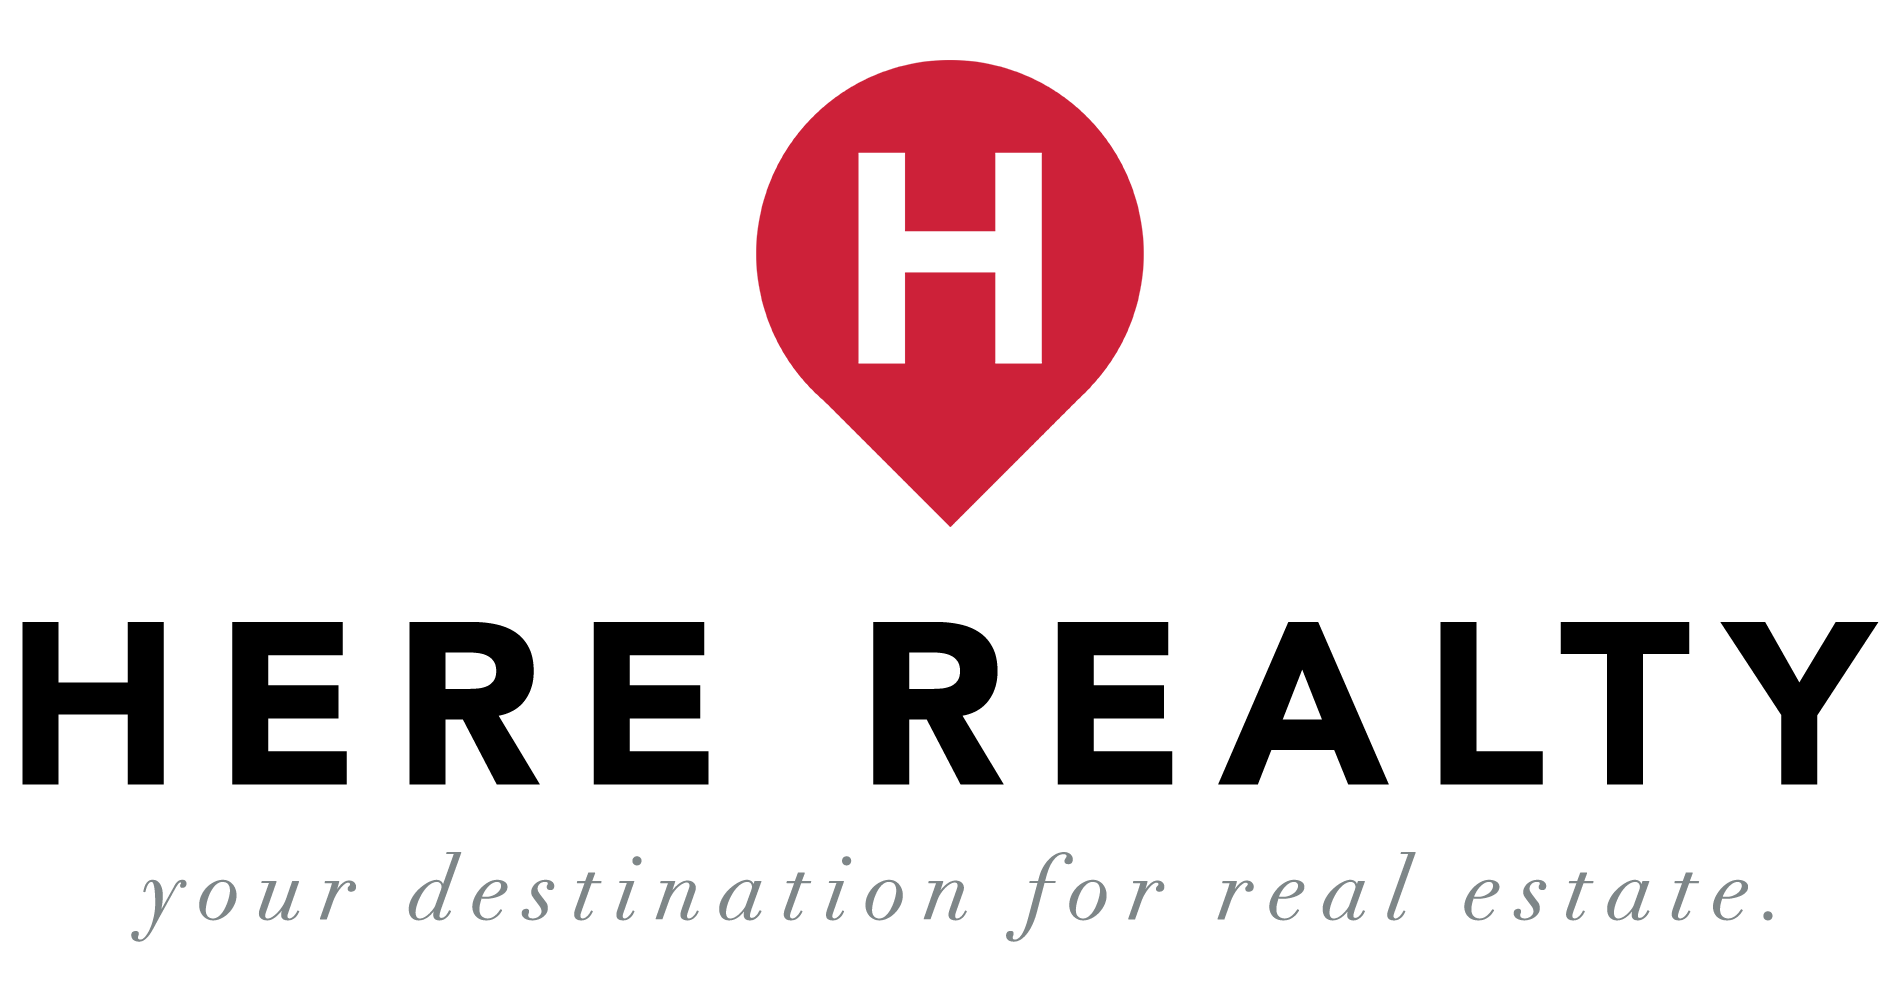 Here Realty | Your destination for real estate in Rhode Island